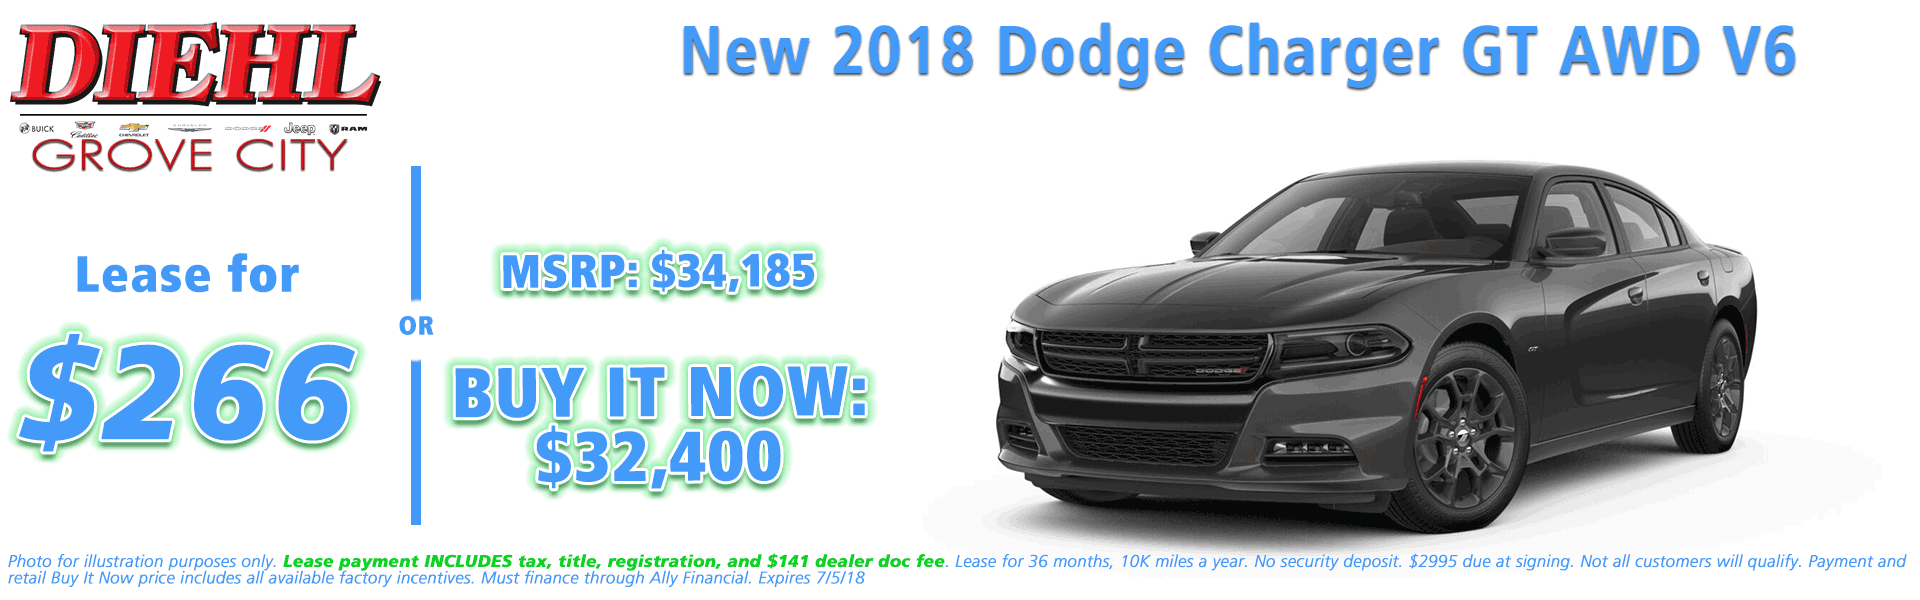 NEW 2018 DODGE CHARGER GT AWD Diehl of Grove City, Pennsylvania. Chrysler Jeep Dodge Ram Chevrolet Buick Cadillac dealership